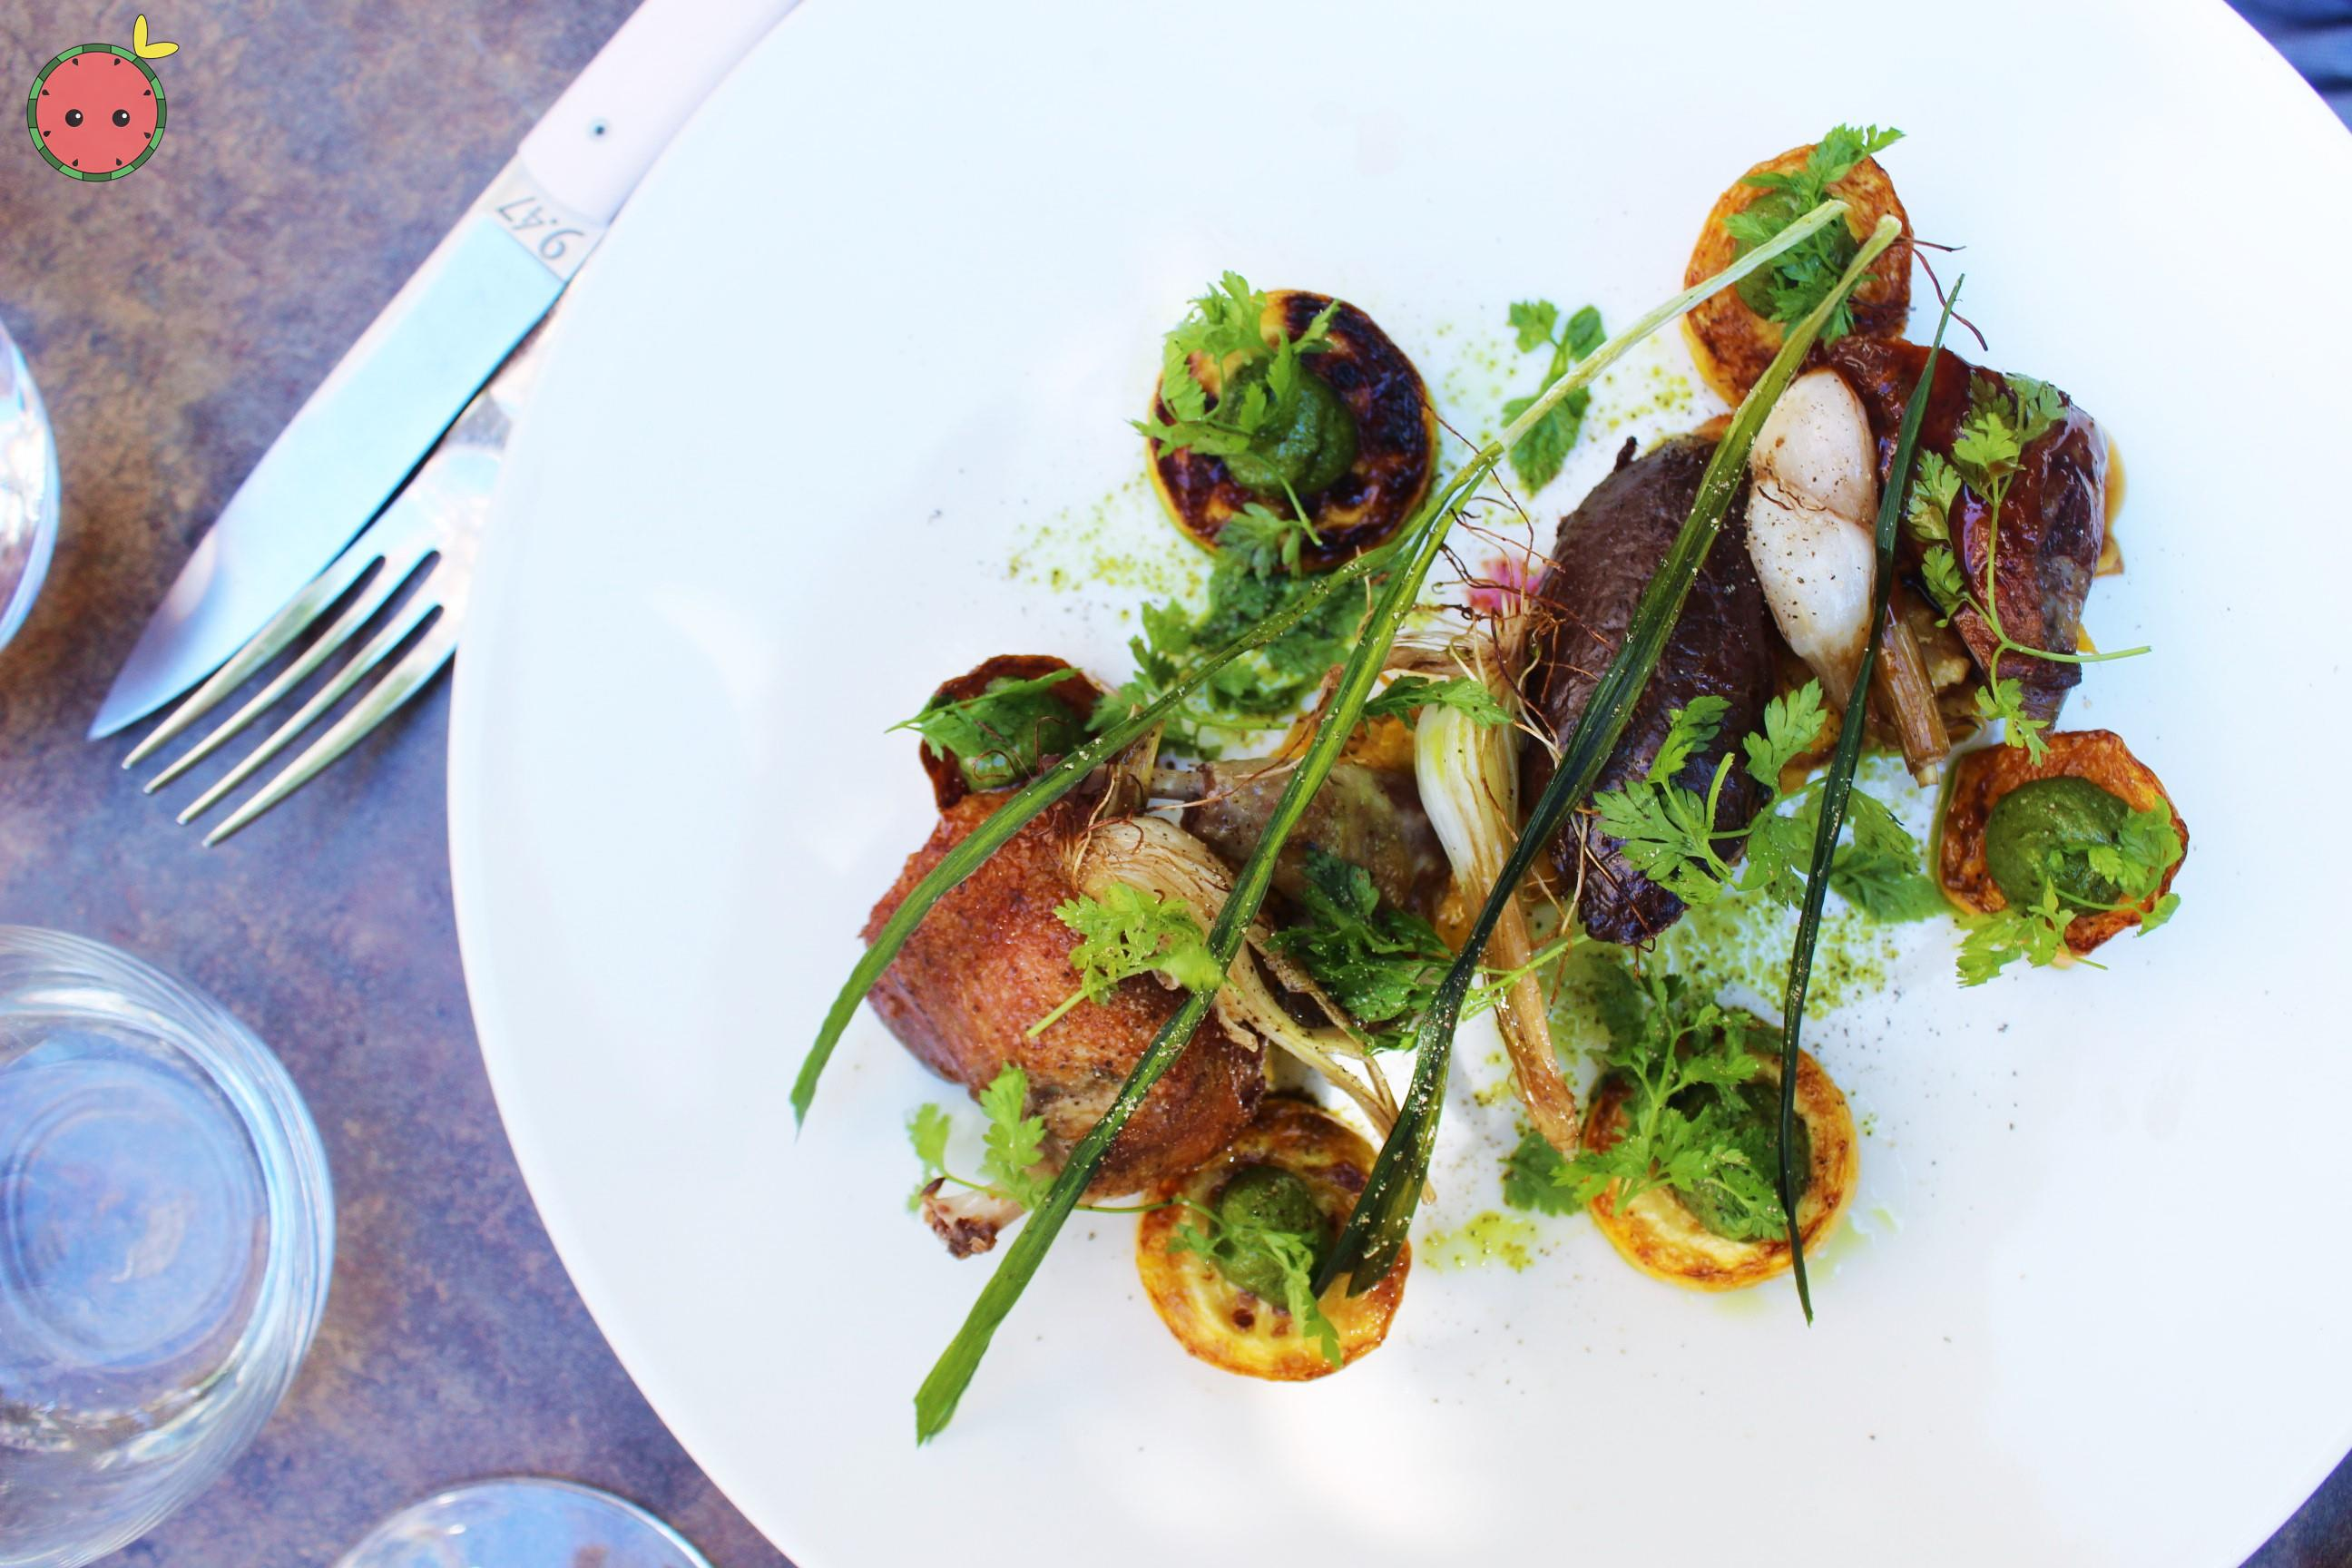 Pornic Pigeon with his rotie, zuccuini, onions, and pesto